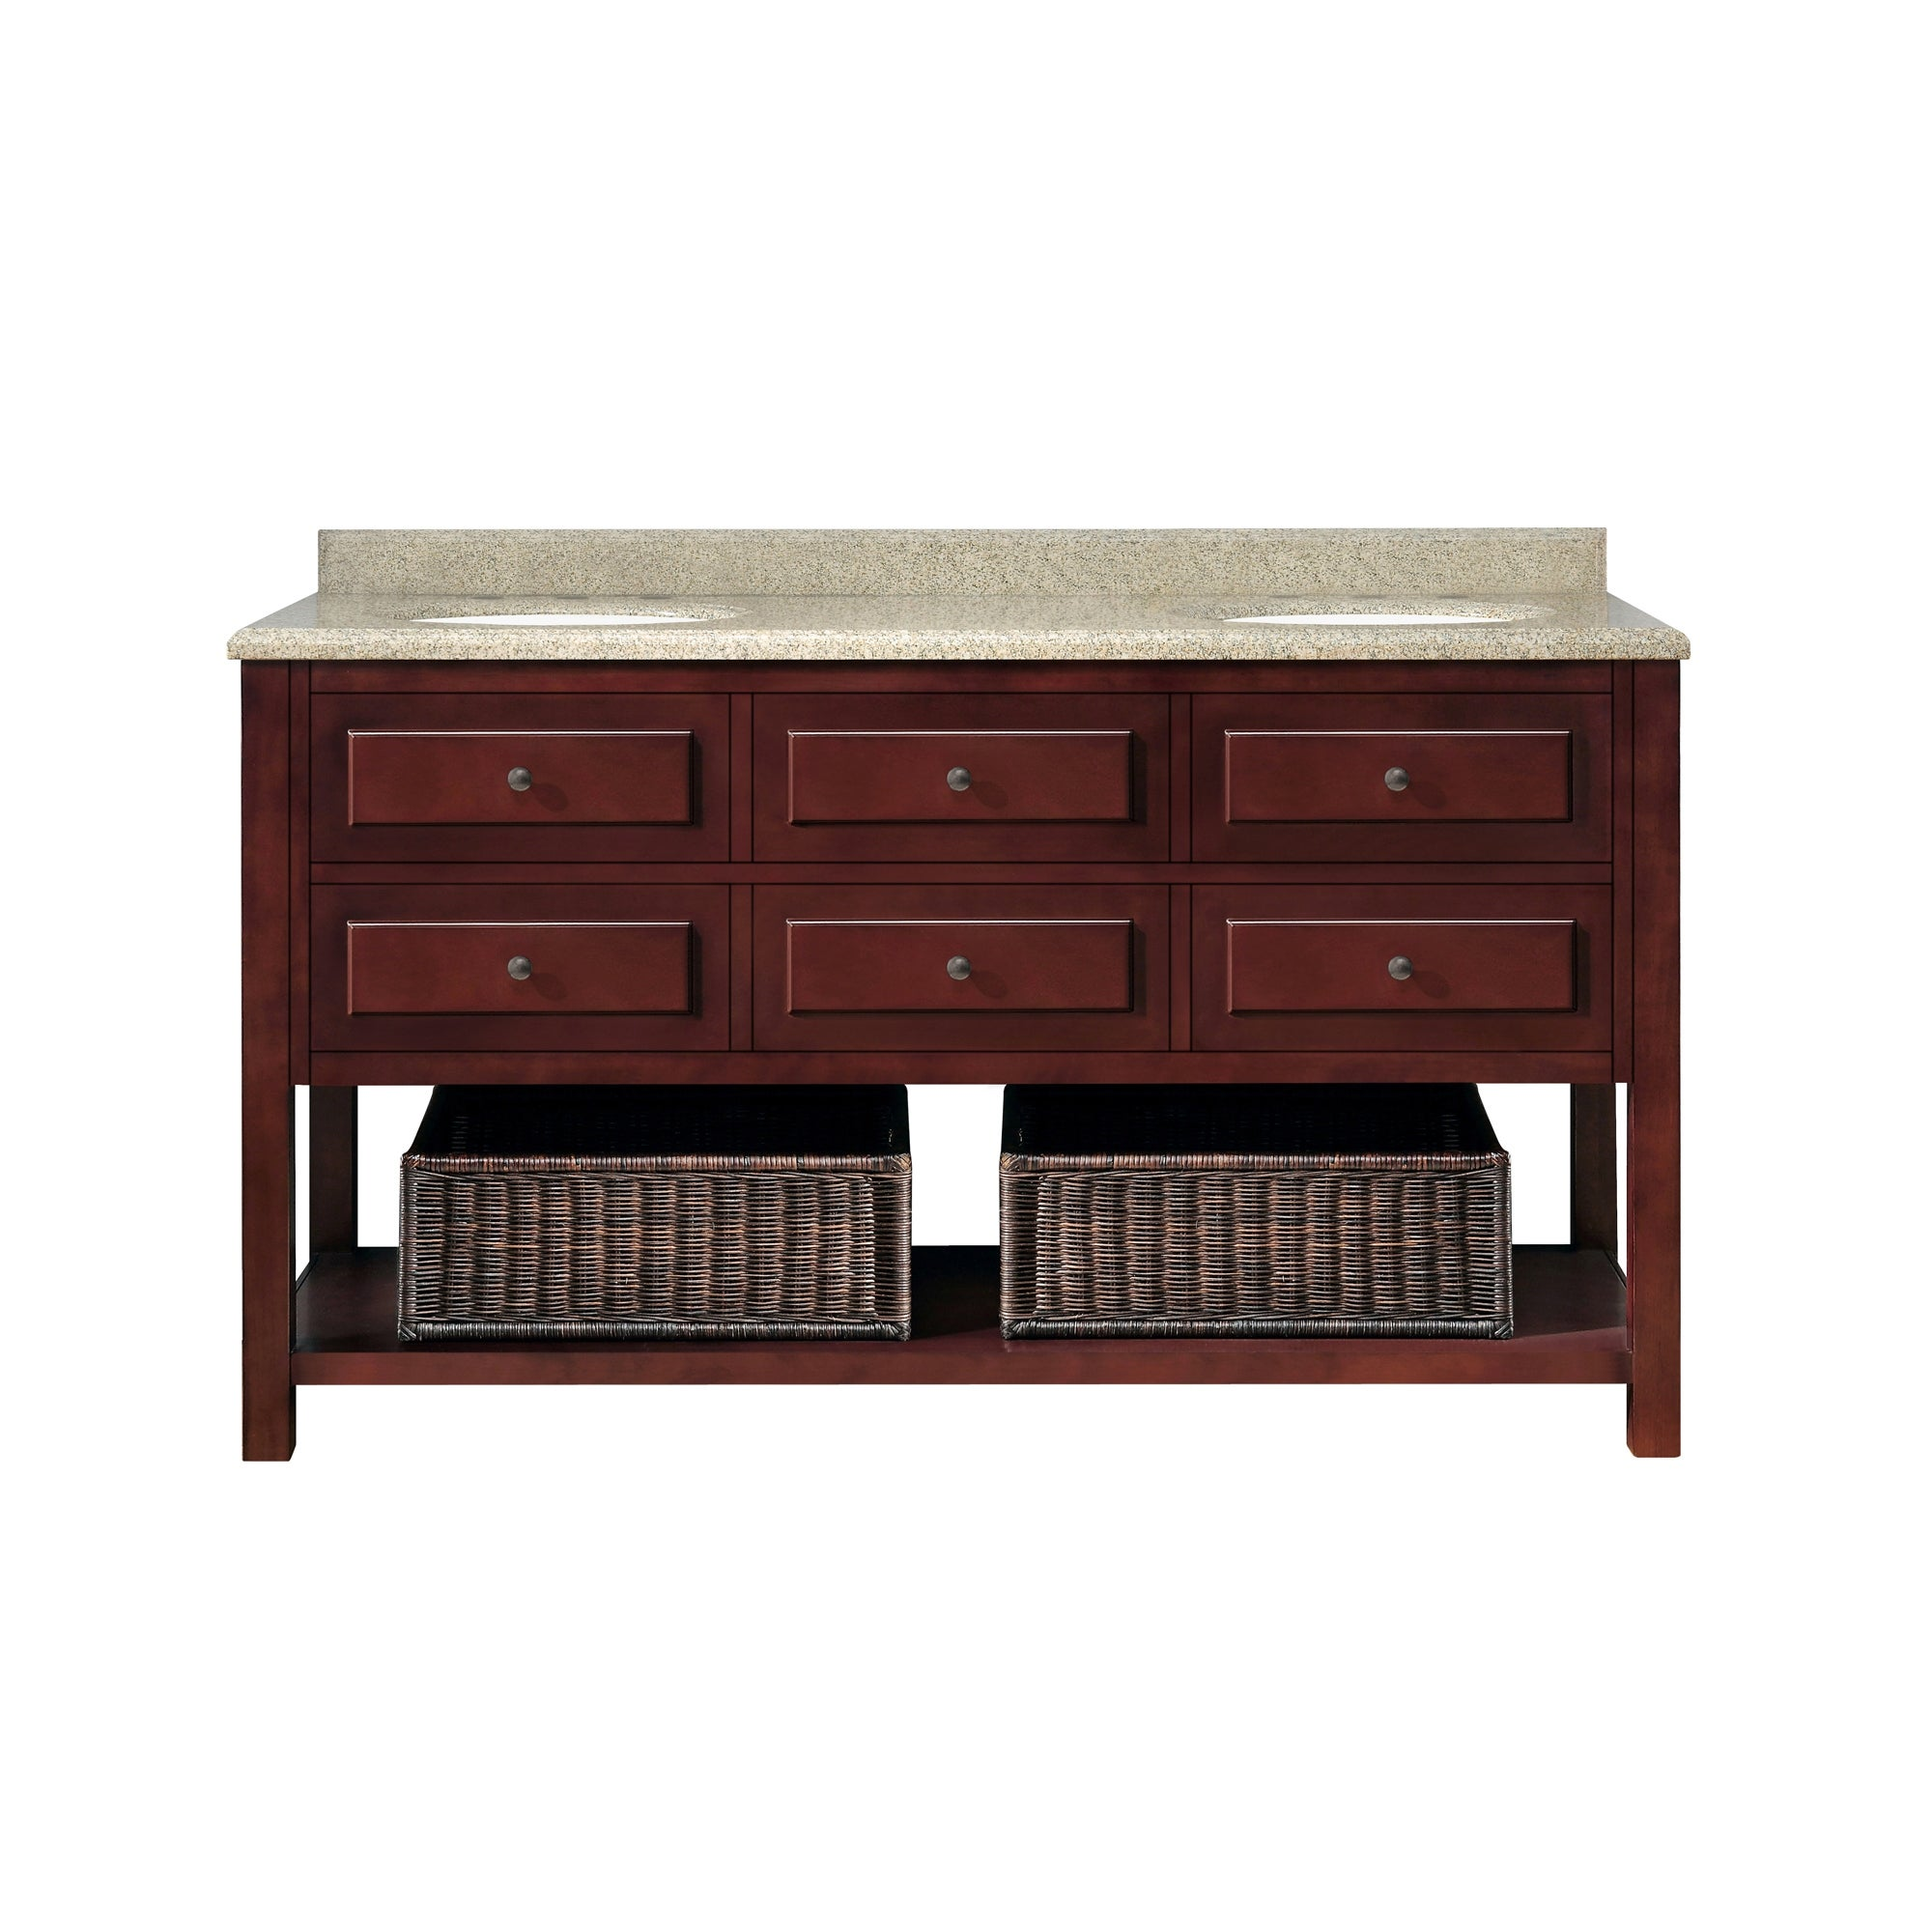 Ove Decors Danny 60 Inch Double Sink Bathroom Vanity Granite Top Overstock 8911254